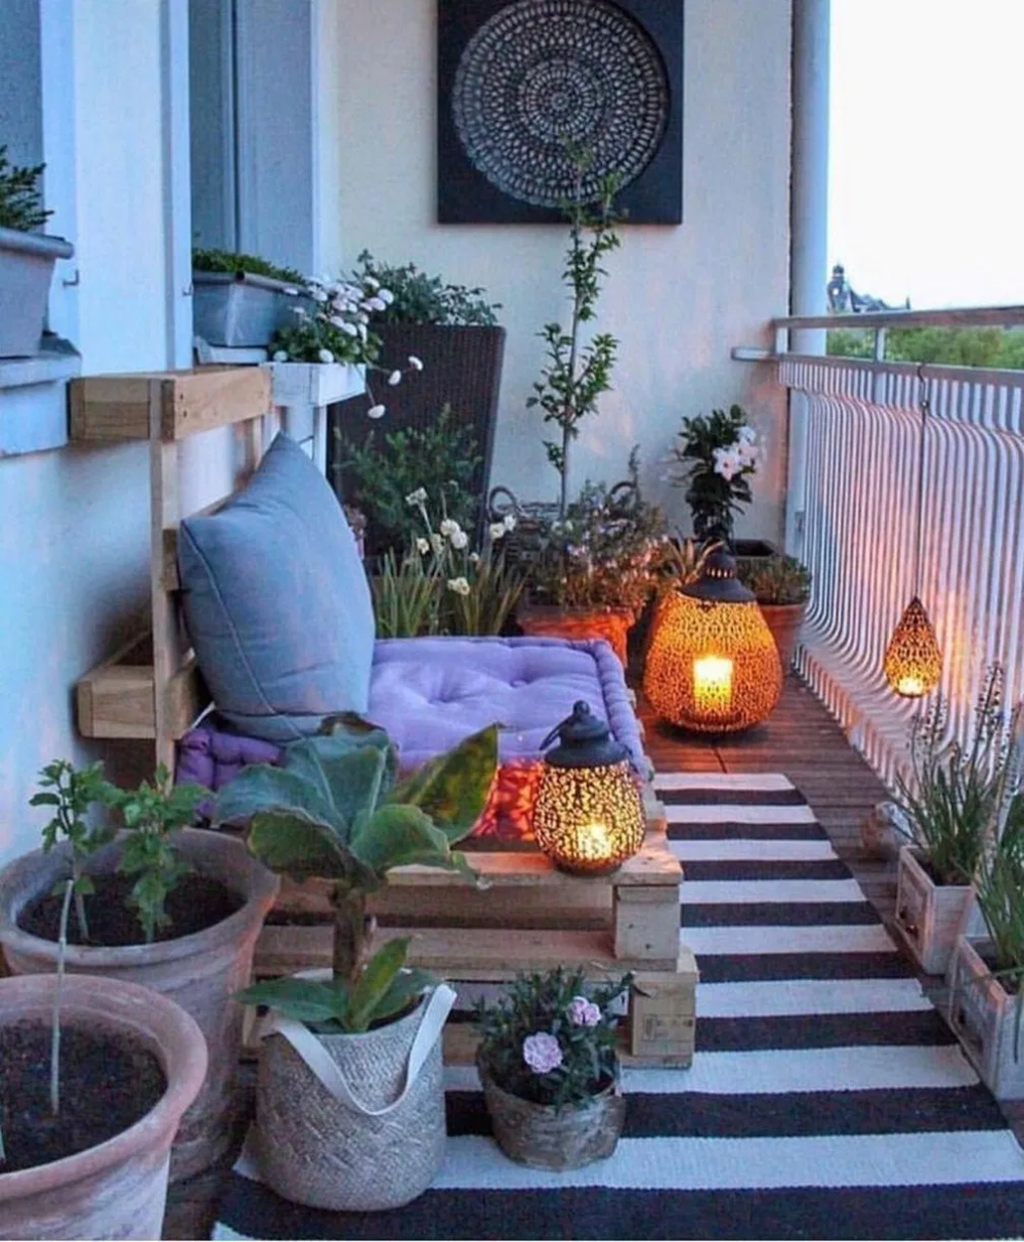 30 Beautiful Apartment Balcony Decorating Ideas Would You Not Fancy A Crisply Decorated Balcony That In 2020 Apartment Balcony Decorating Beautiful Apartments Decor